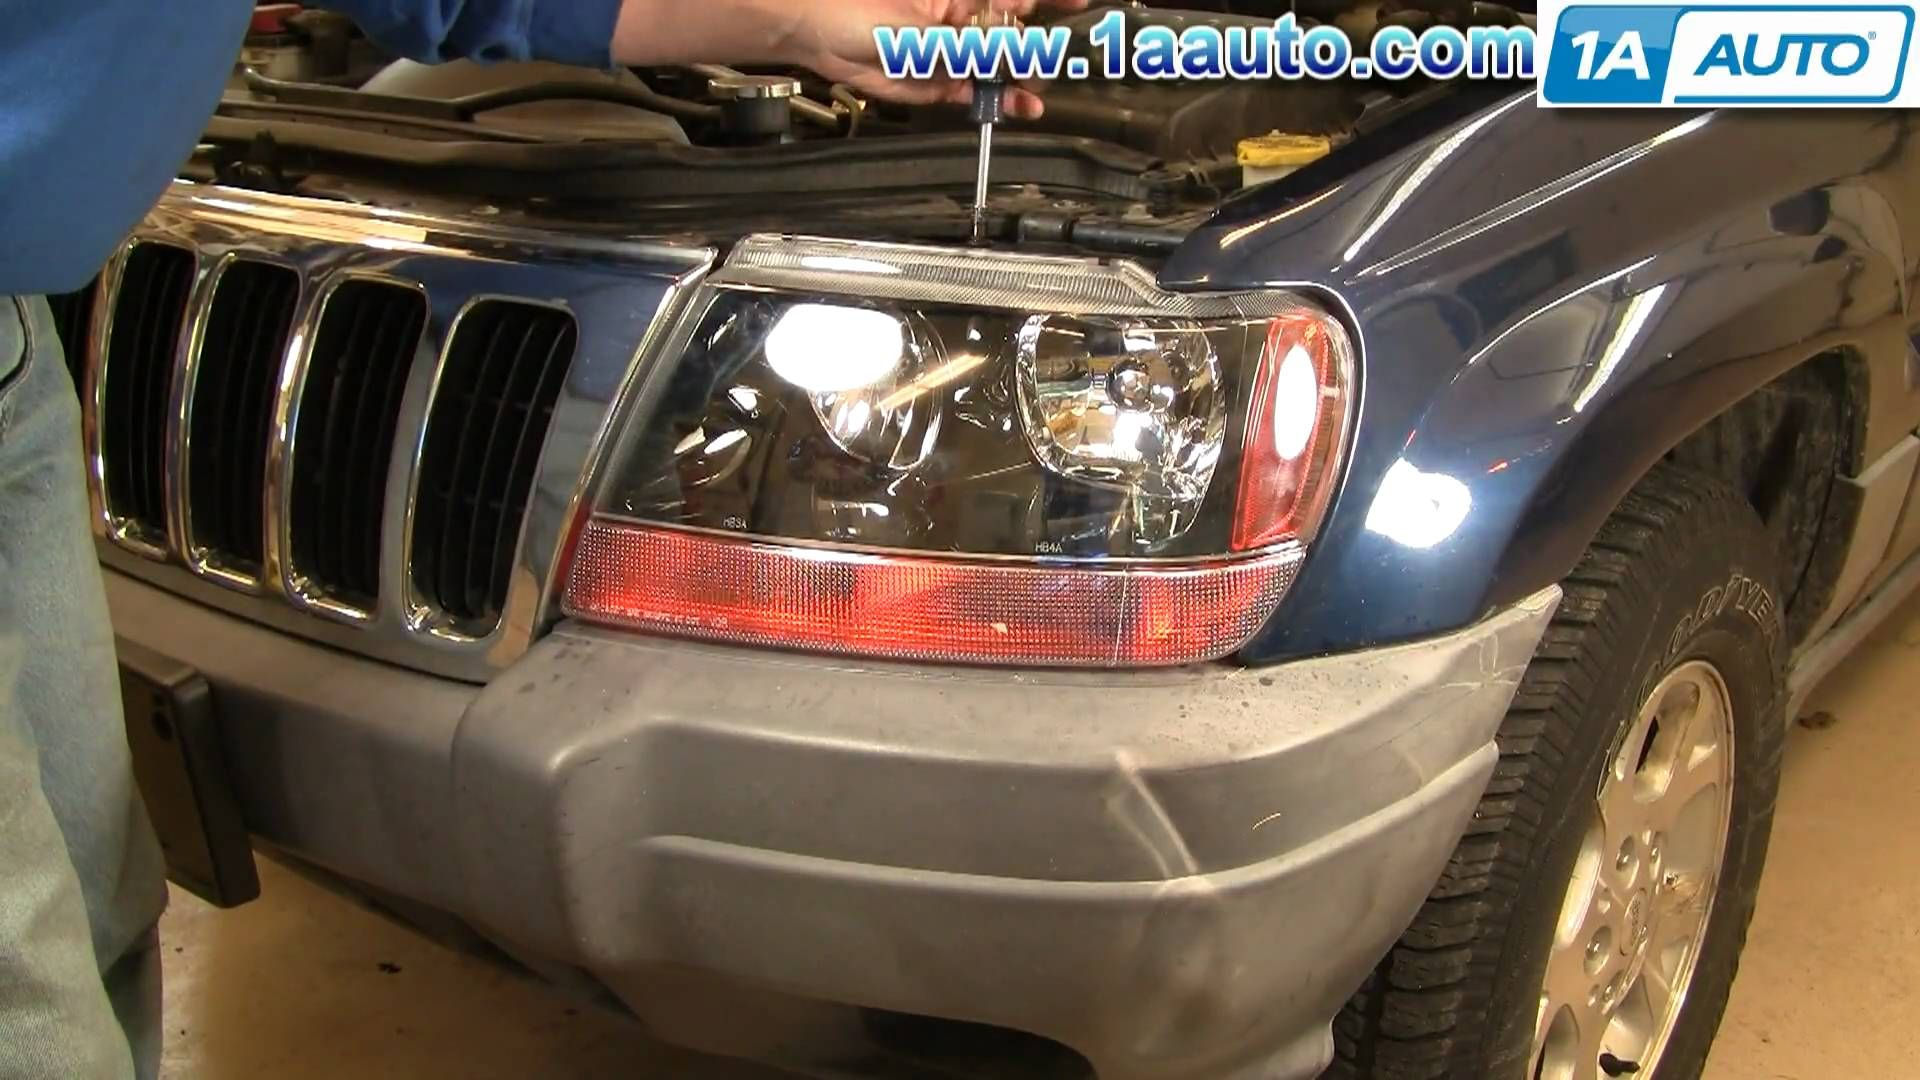 Learn how to replace the headlights in your Chrysler Jeep Grand Cherokee